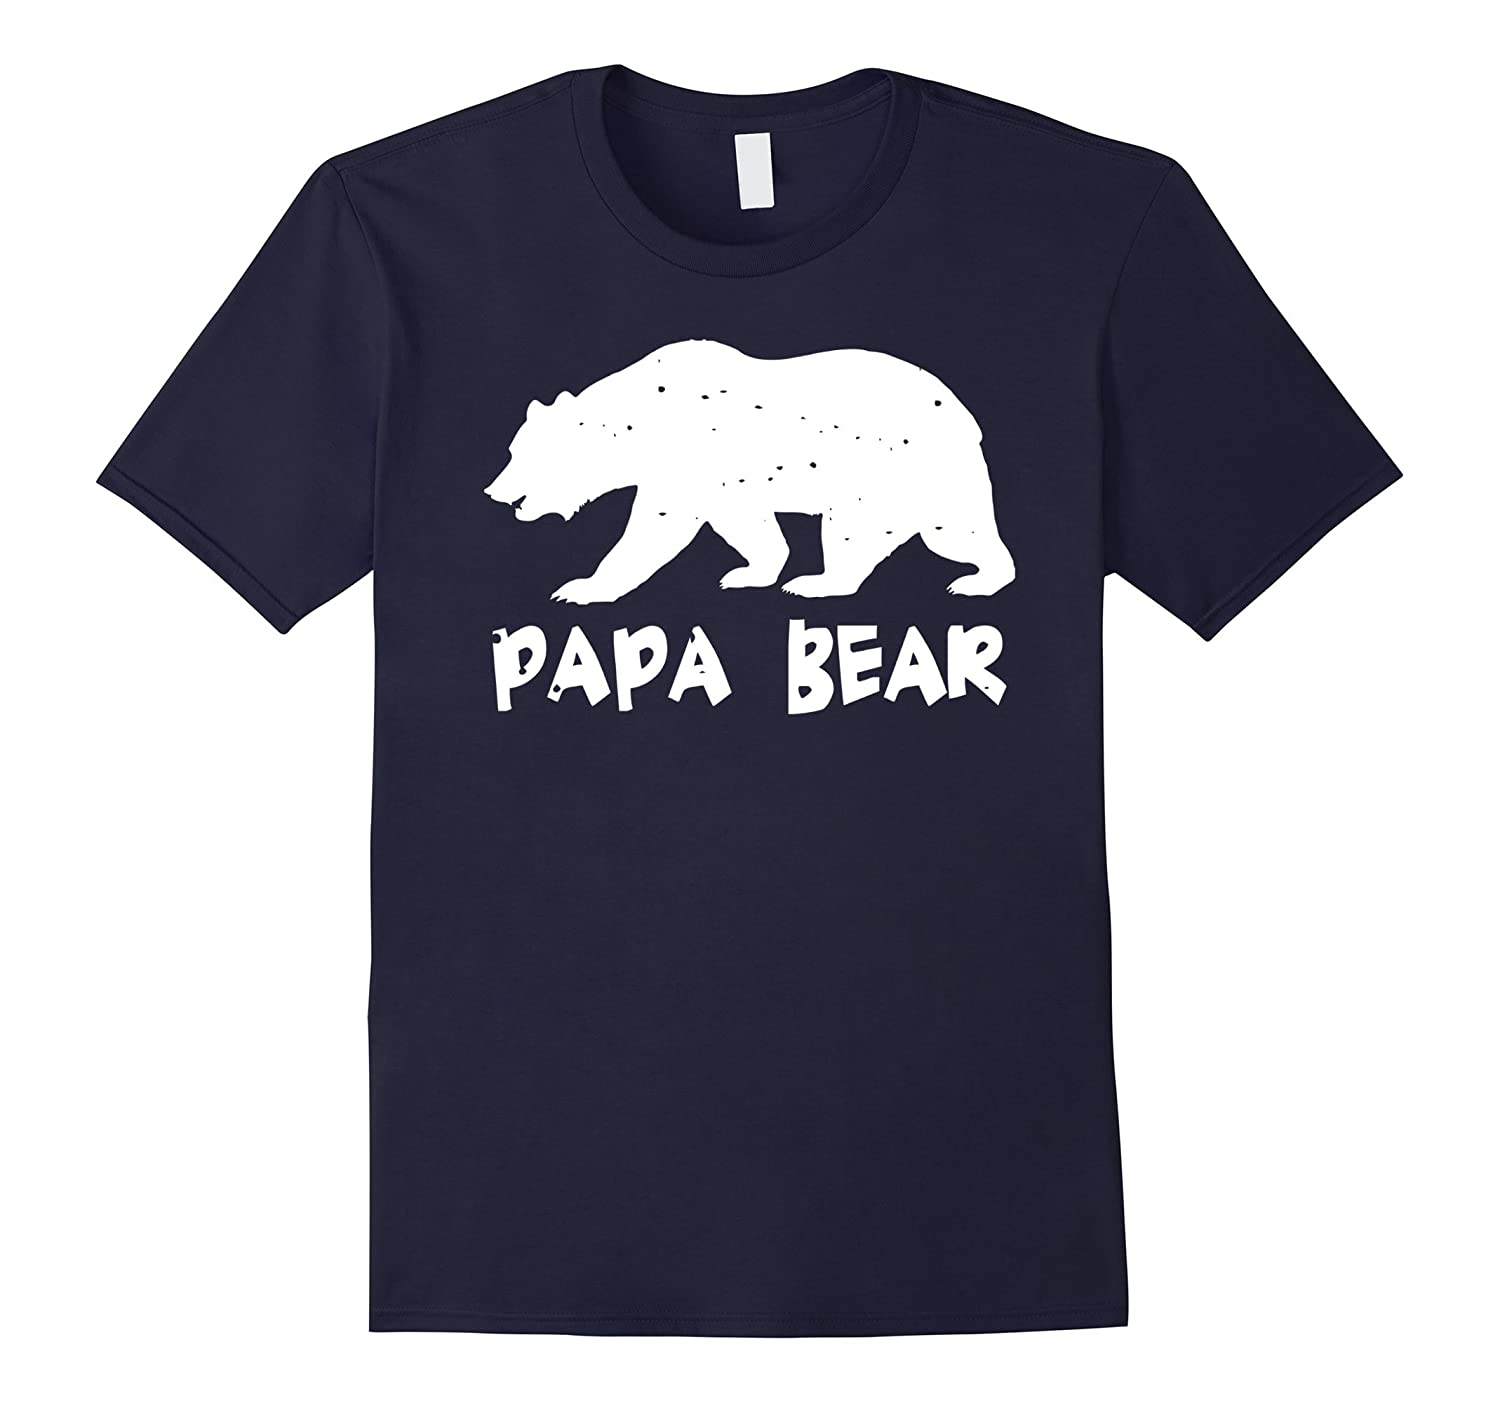 Papa Bear Funny Matching T-Shirt for Dad Great Gift Idea-TH